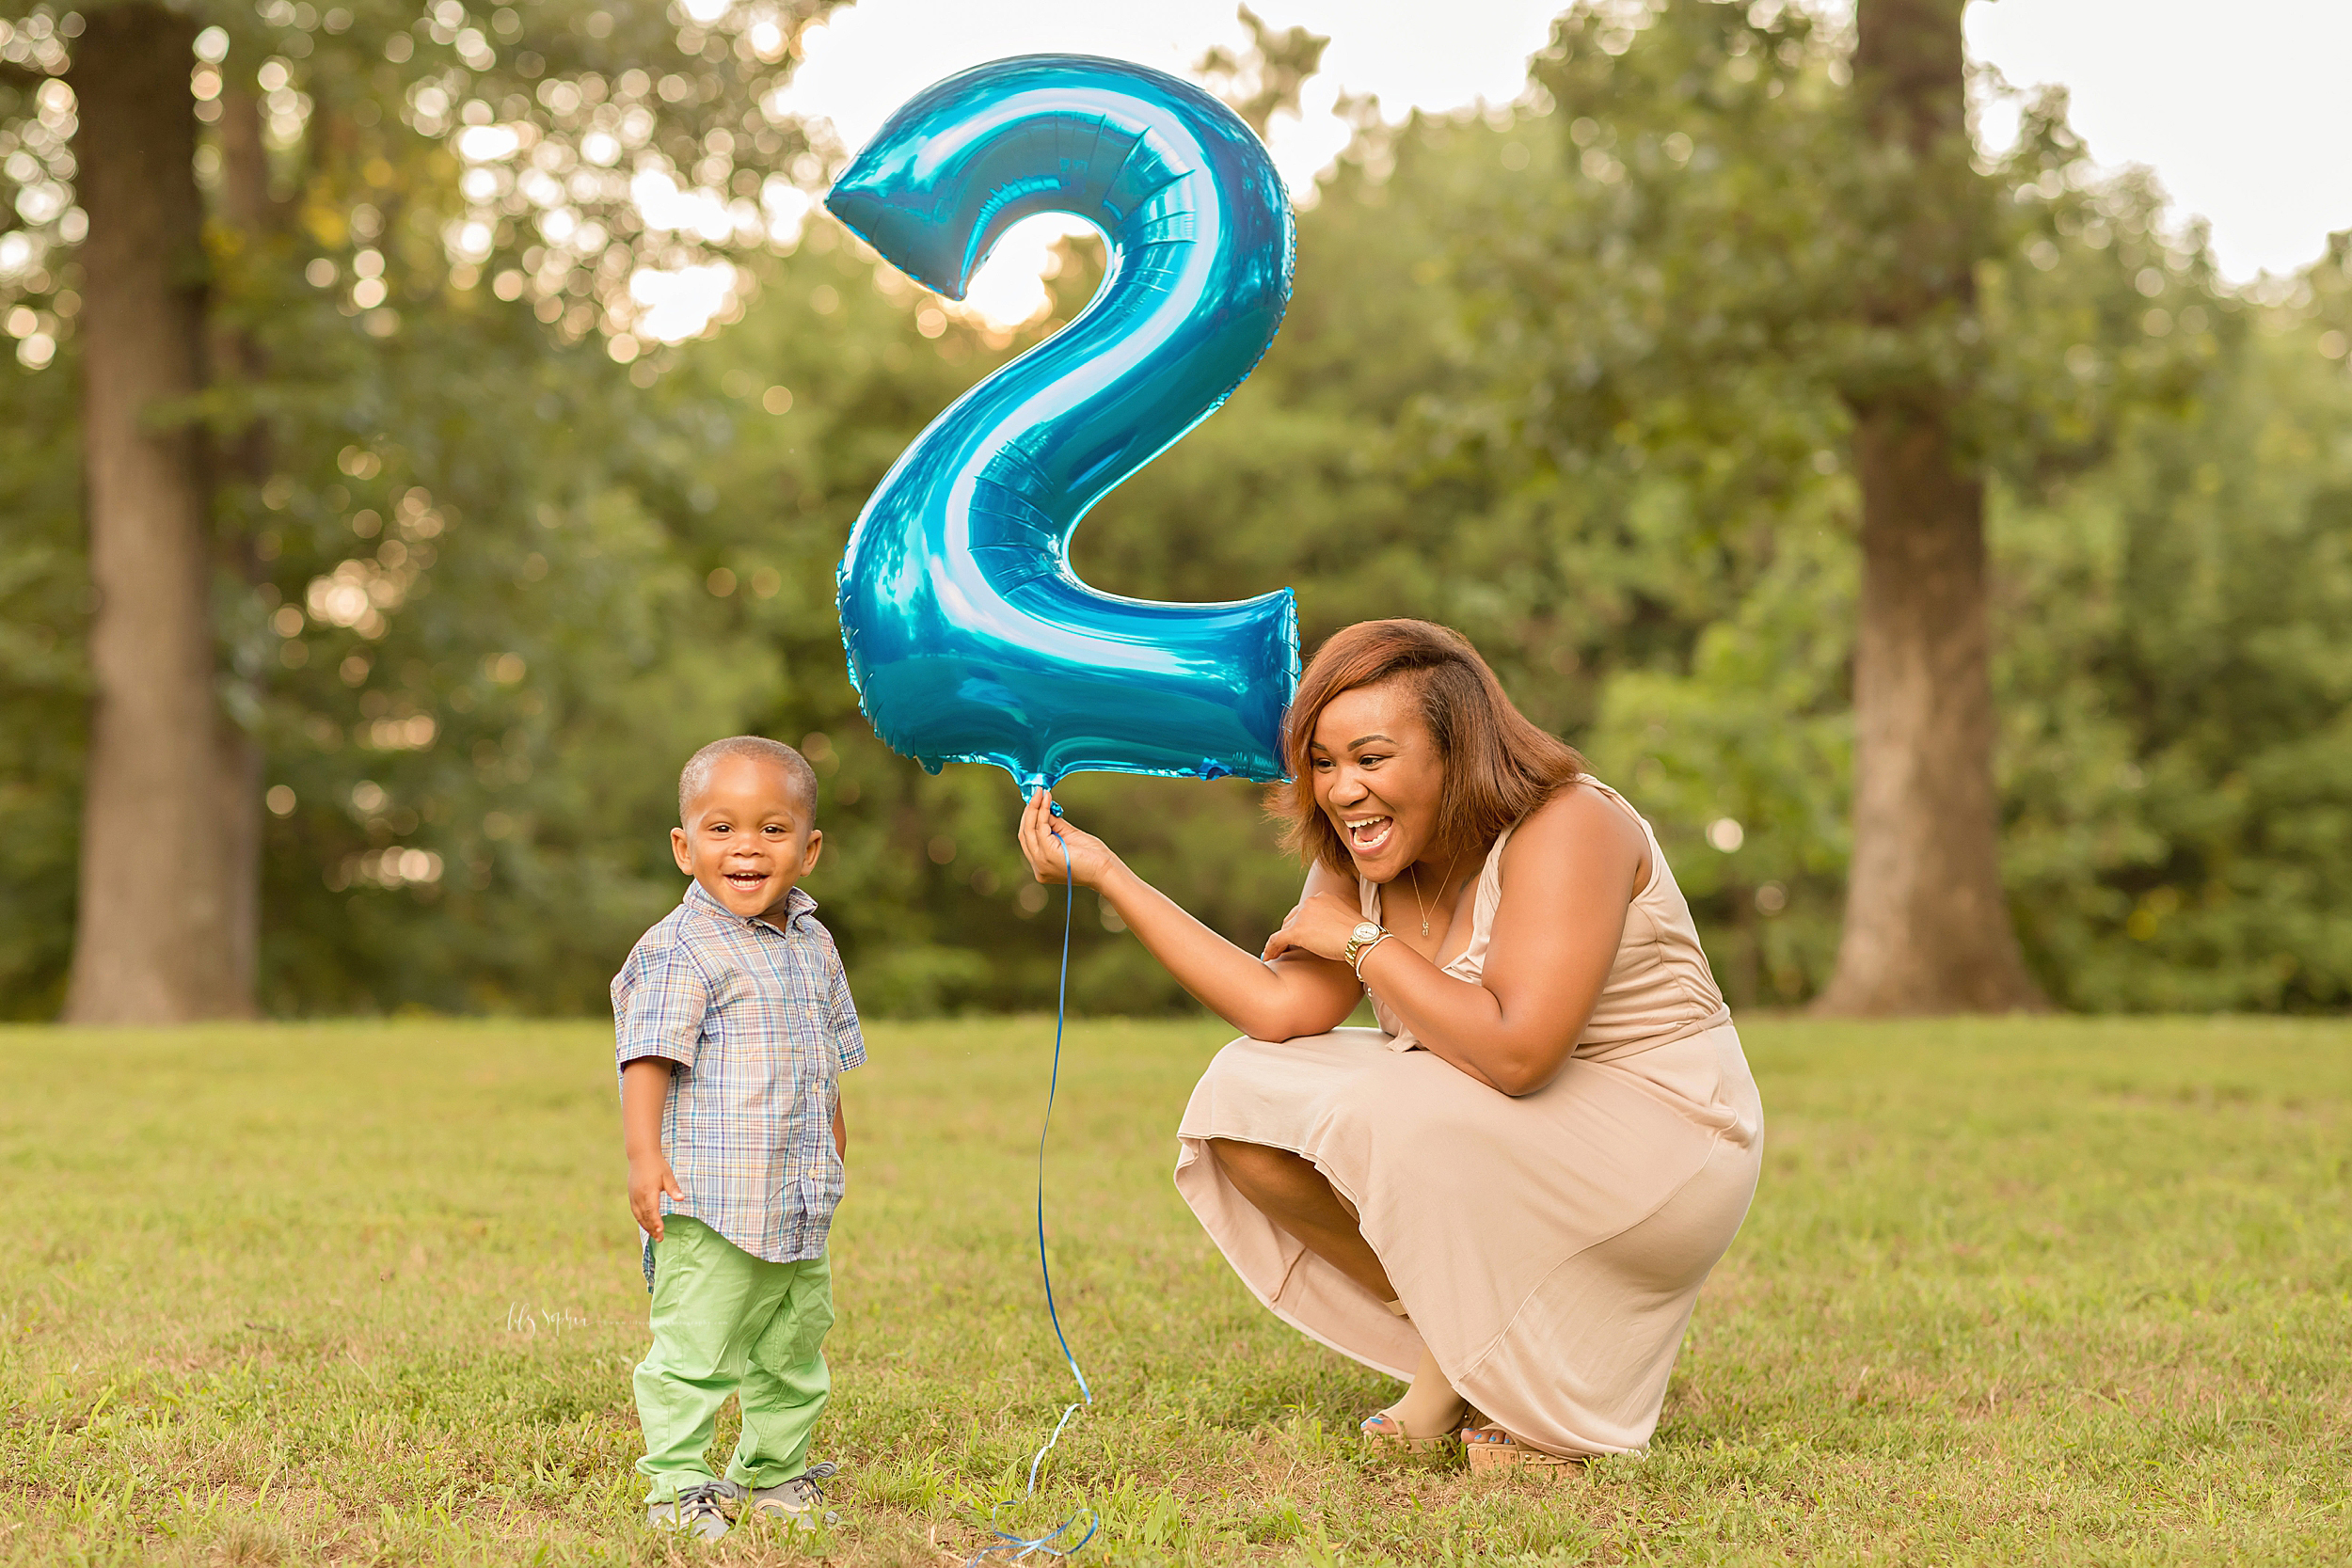 atlanta-hapeville-brookhaven-alpharetta-virginia-highlands-smyrna-decatur-lily-sophia-photography-outdoor-family-mother-toddler-son-second-birthday-park-sunset-pictures_0708.jpg